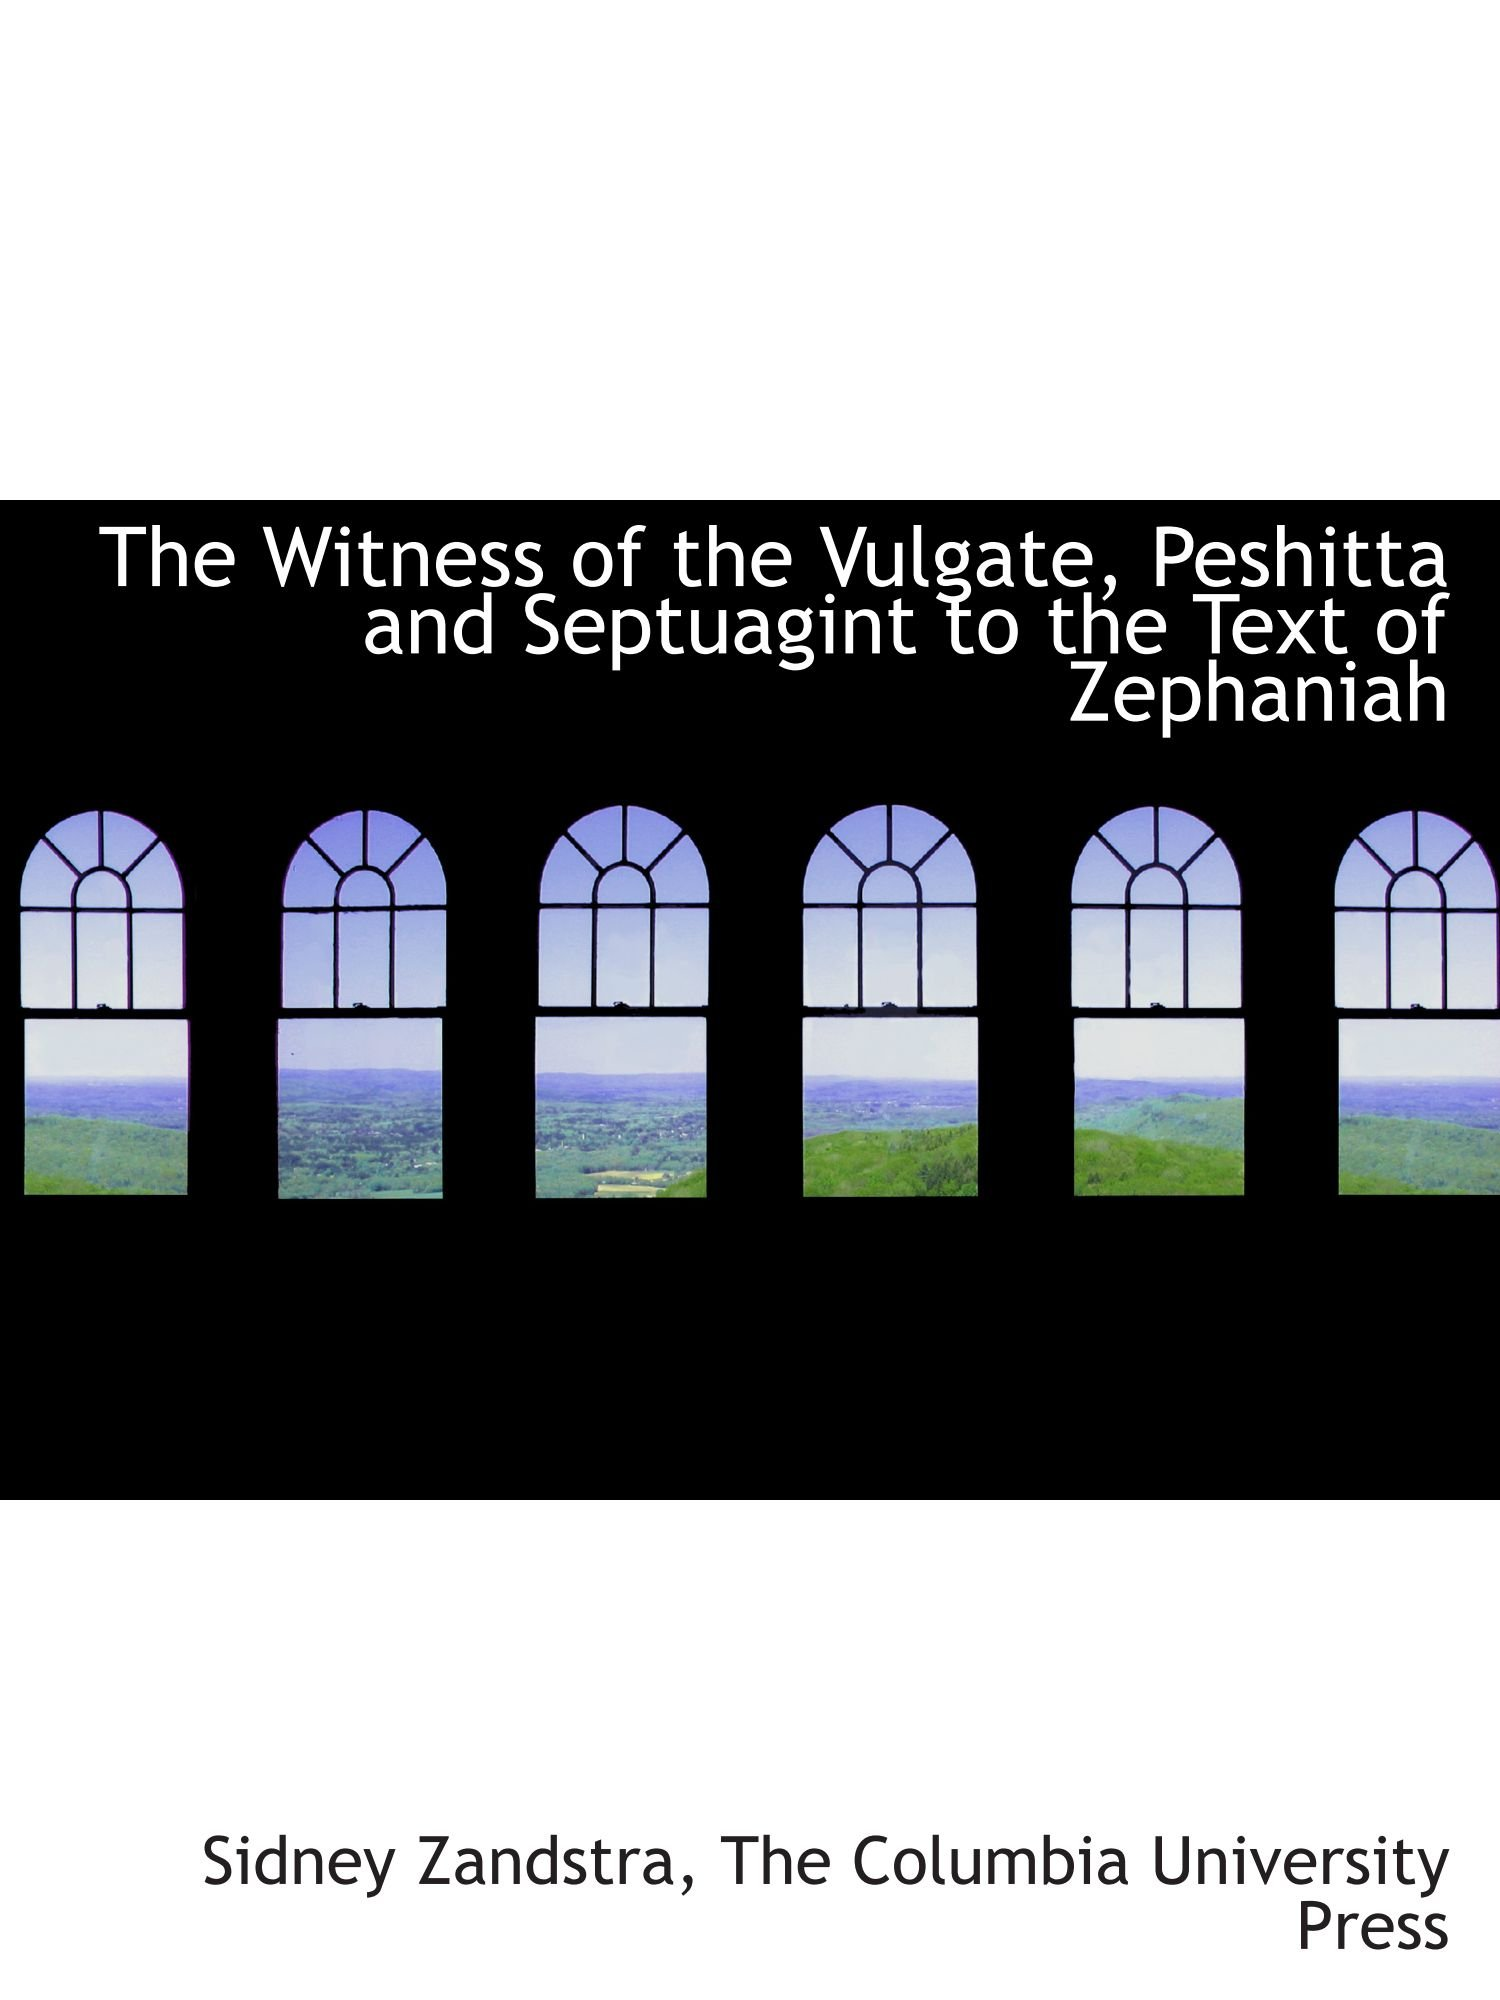 The witness of the Vulgate, Peshitta and Septuagint to the text of Zephaniah